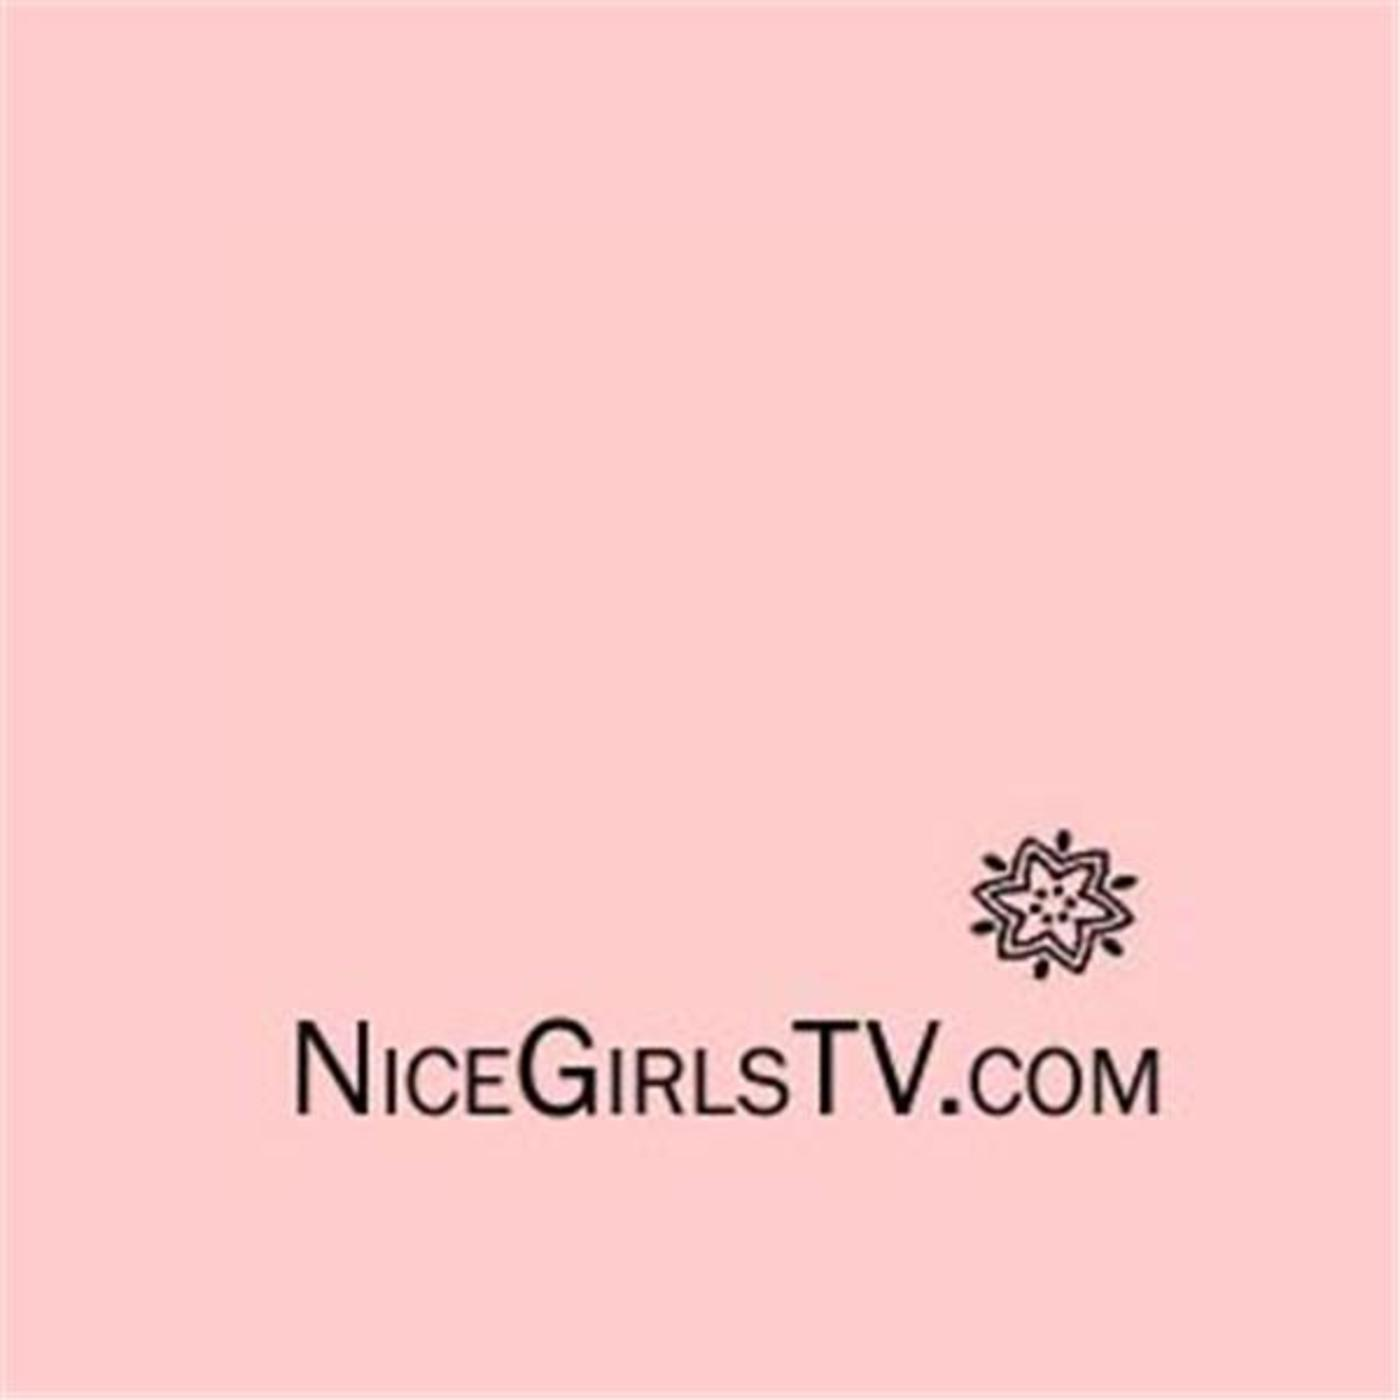 Nice Girls TV